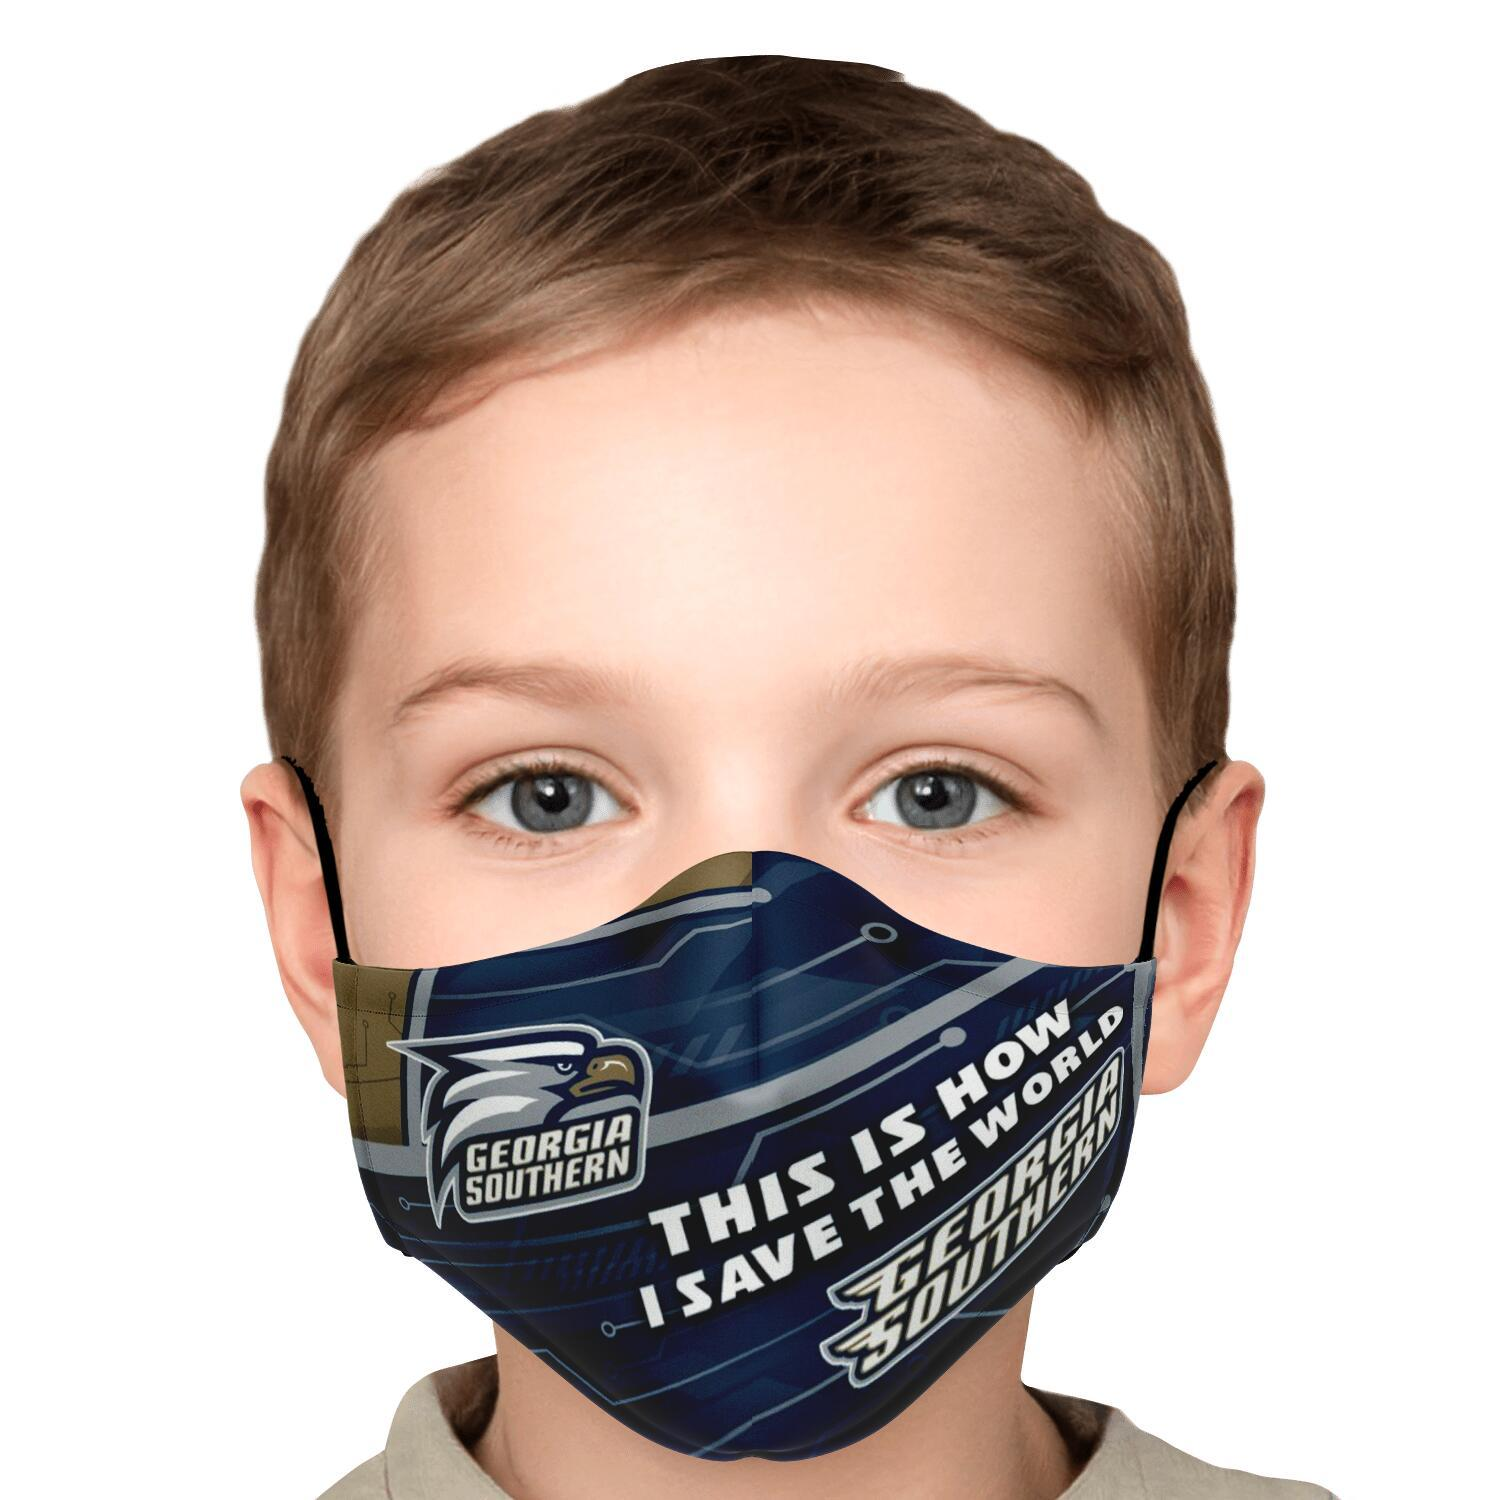 This Is How I Save The World Georgia Southern Eagles Face Masks 5